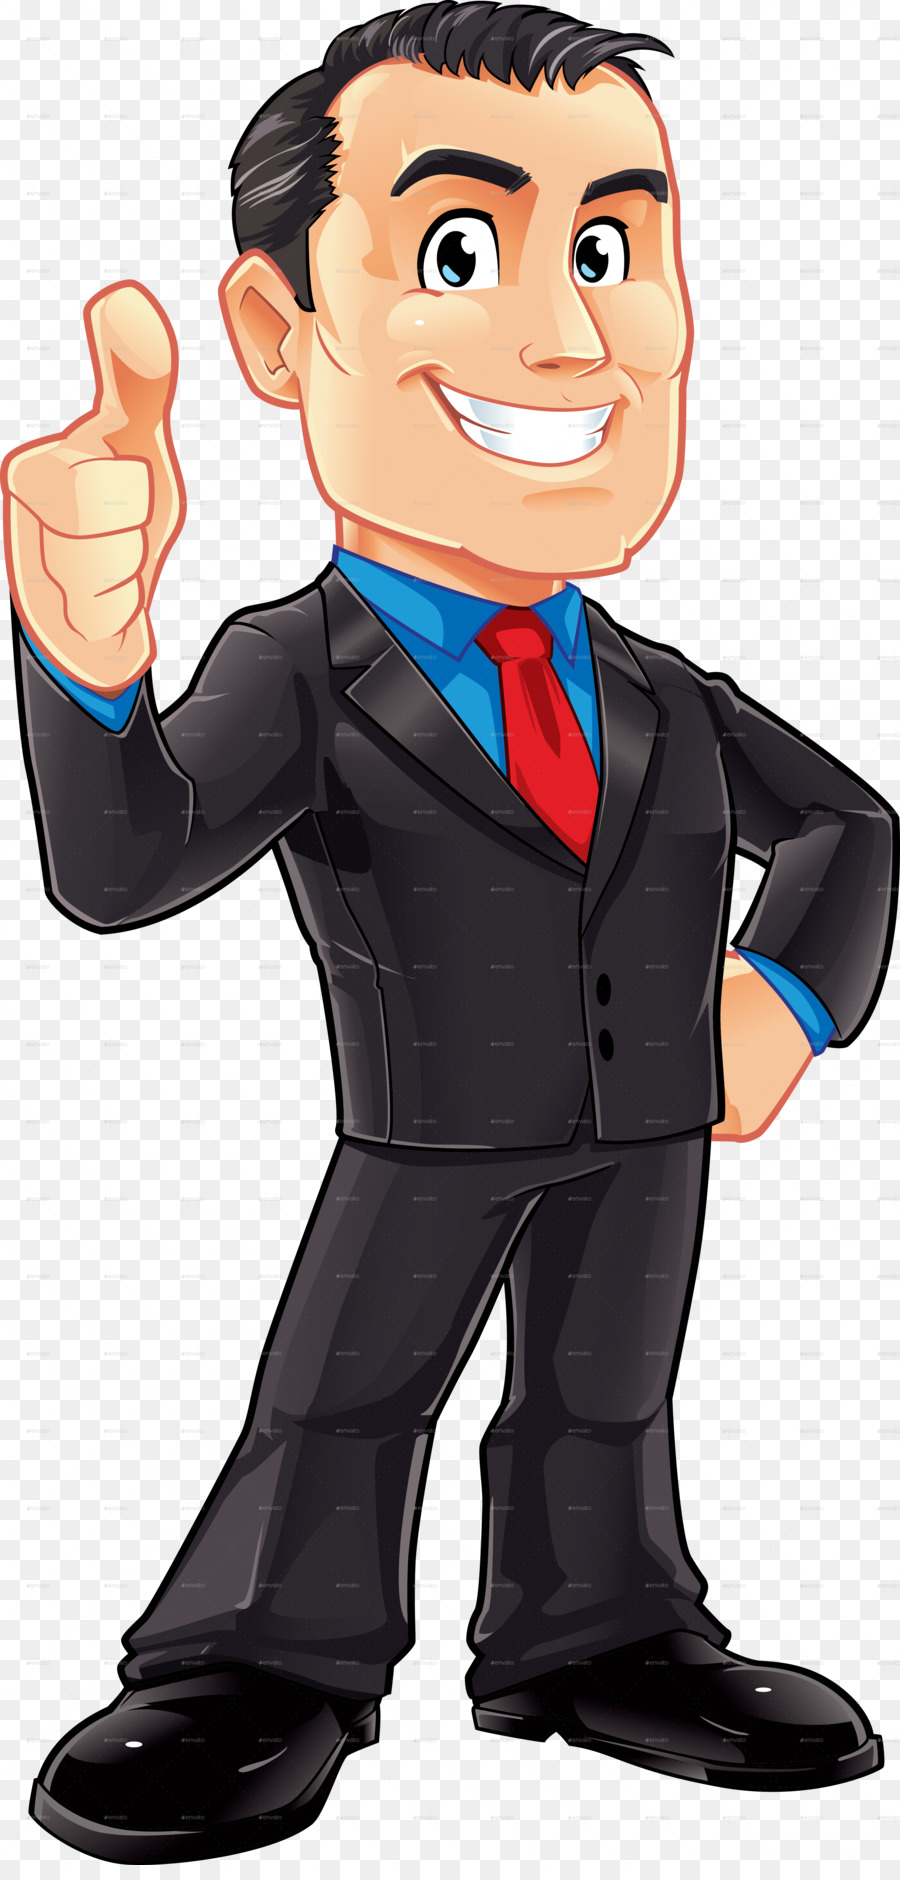 Character clipart business man. Cartoon businessperson male clip